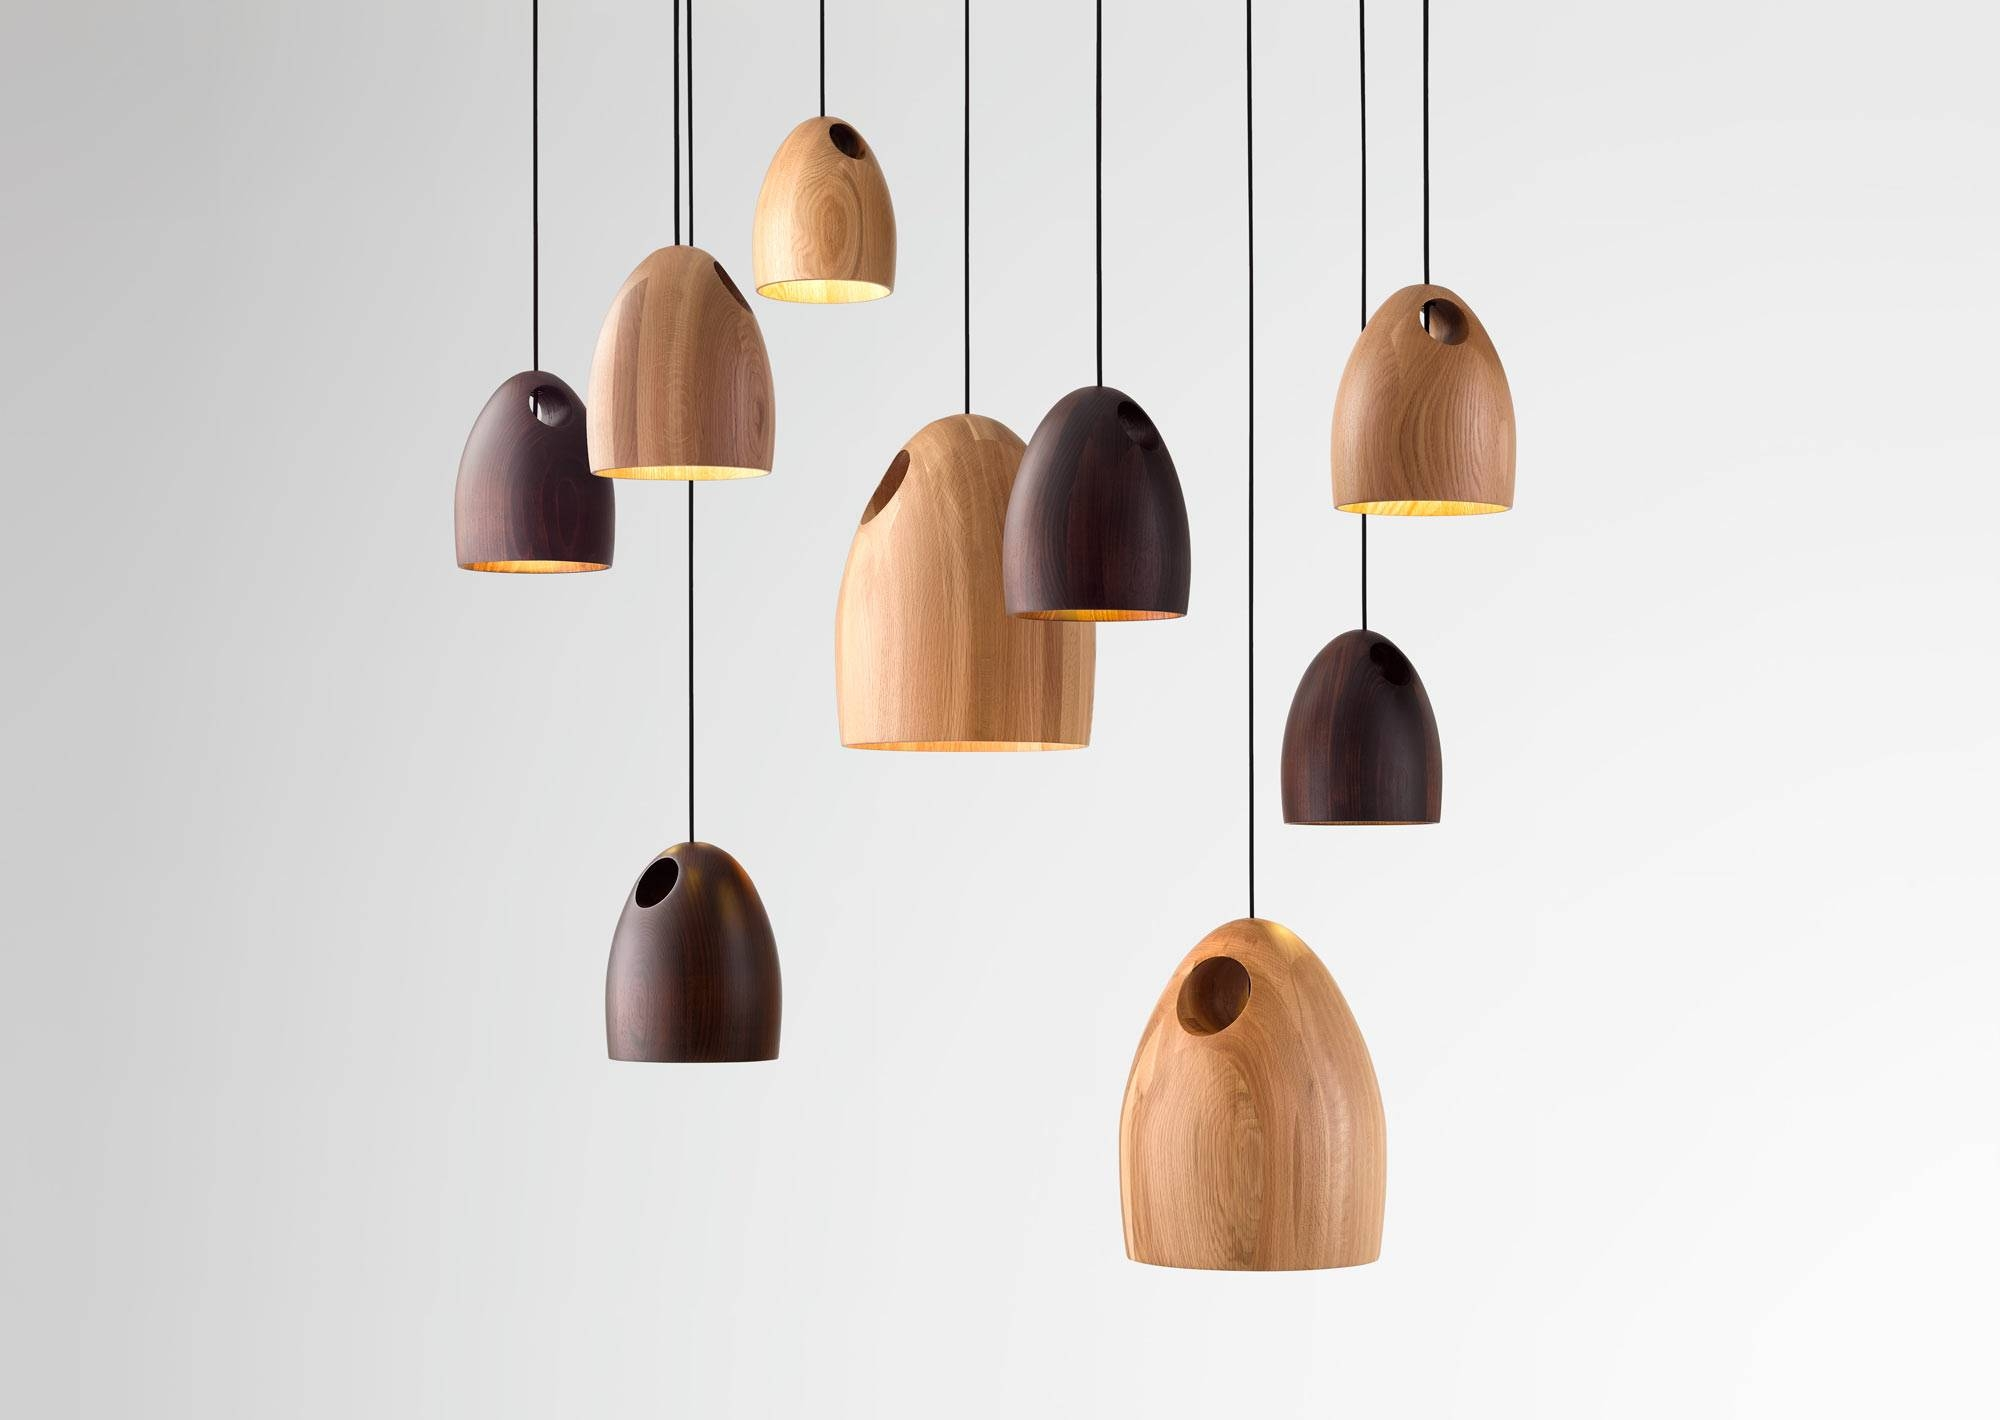 Oak Pendant Light | Ross Gardam - Melbourne Australia inside Wooden Pendant Lights Australia (Image 12 of 15)